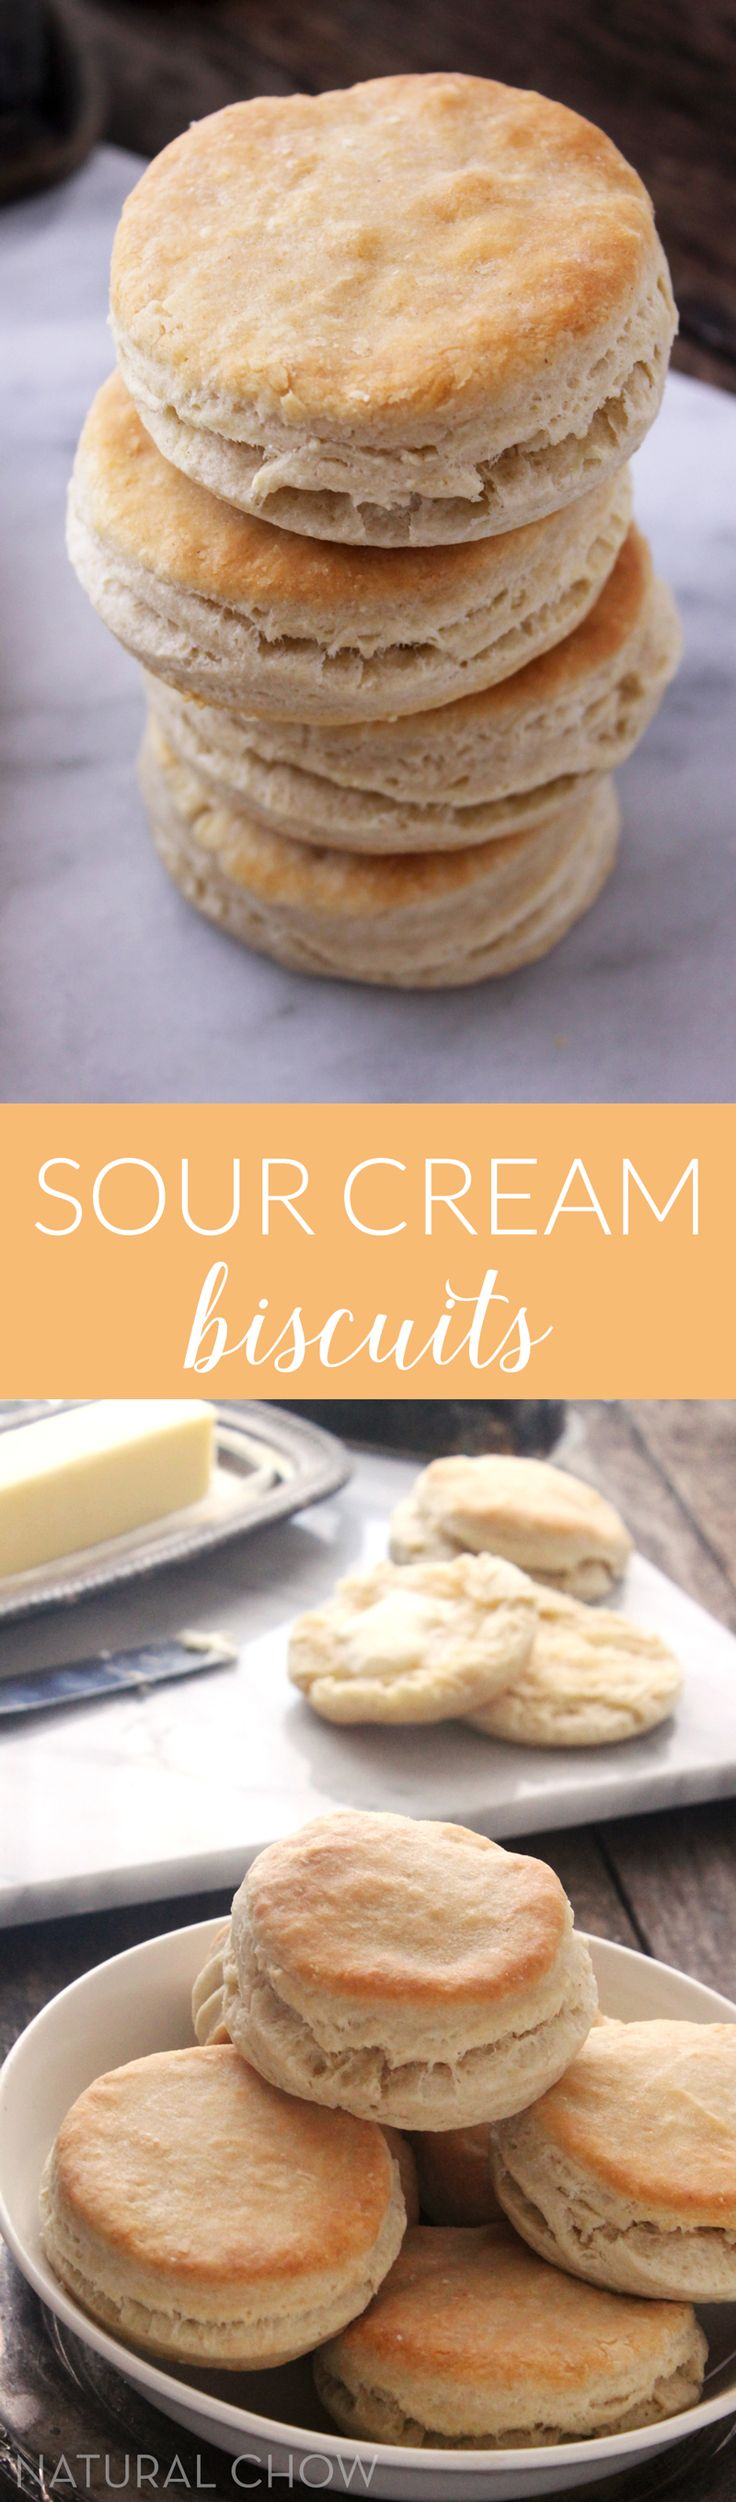 Learn how to makeSour Cream Biscuitsfrom scratch with this simple step-by-step tutorial!